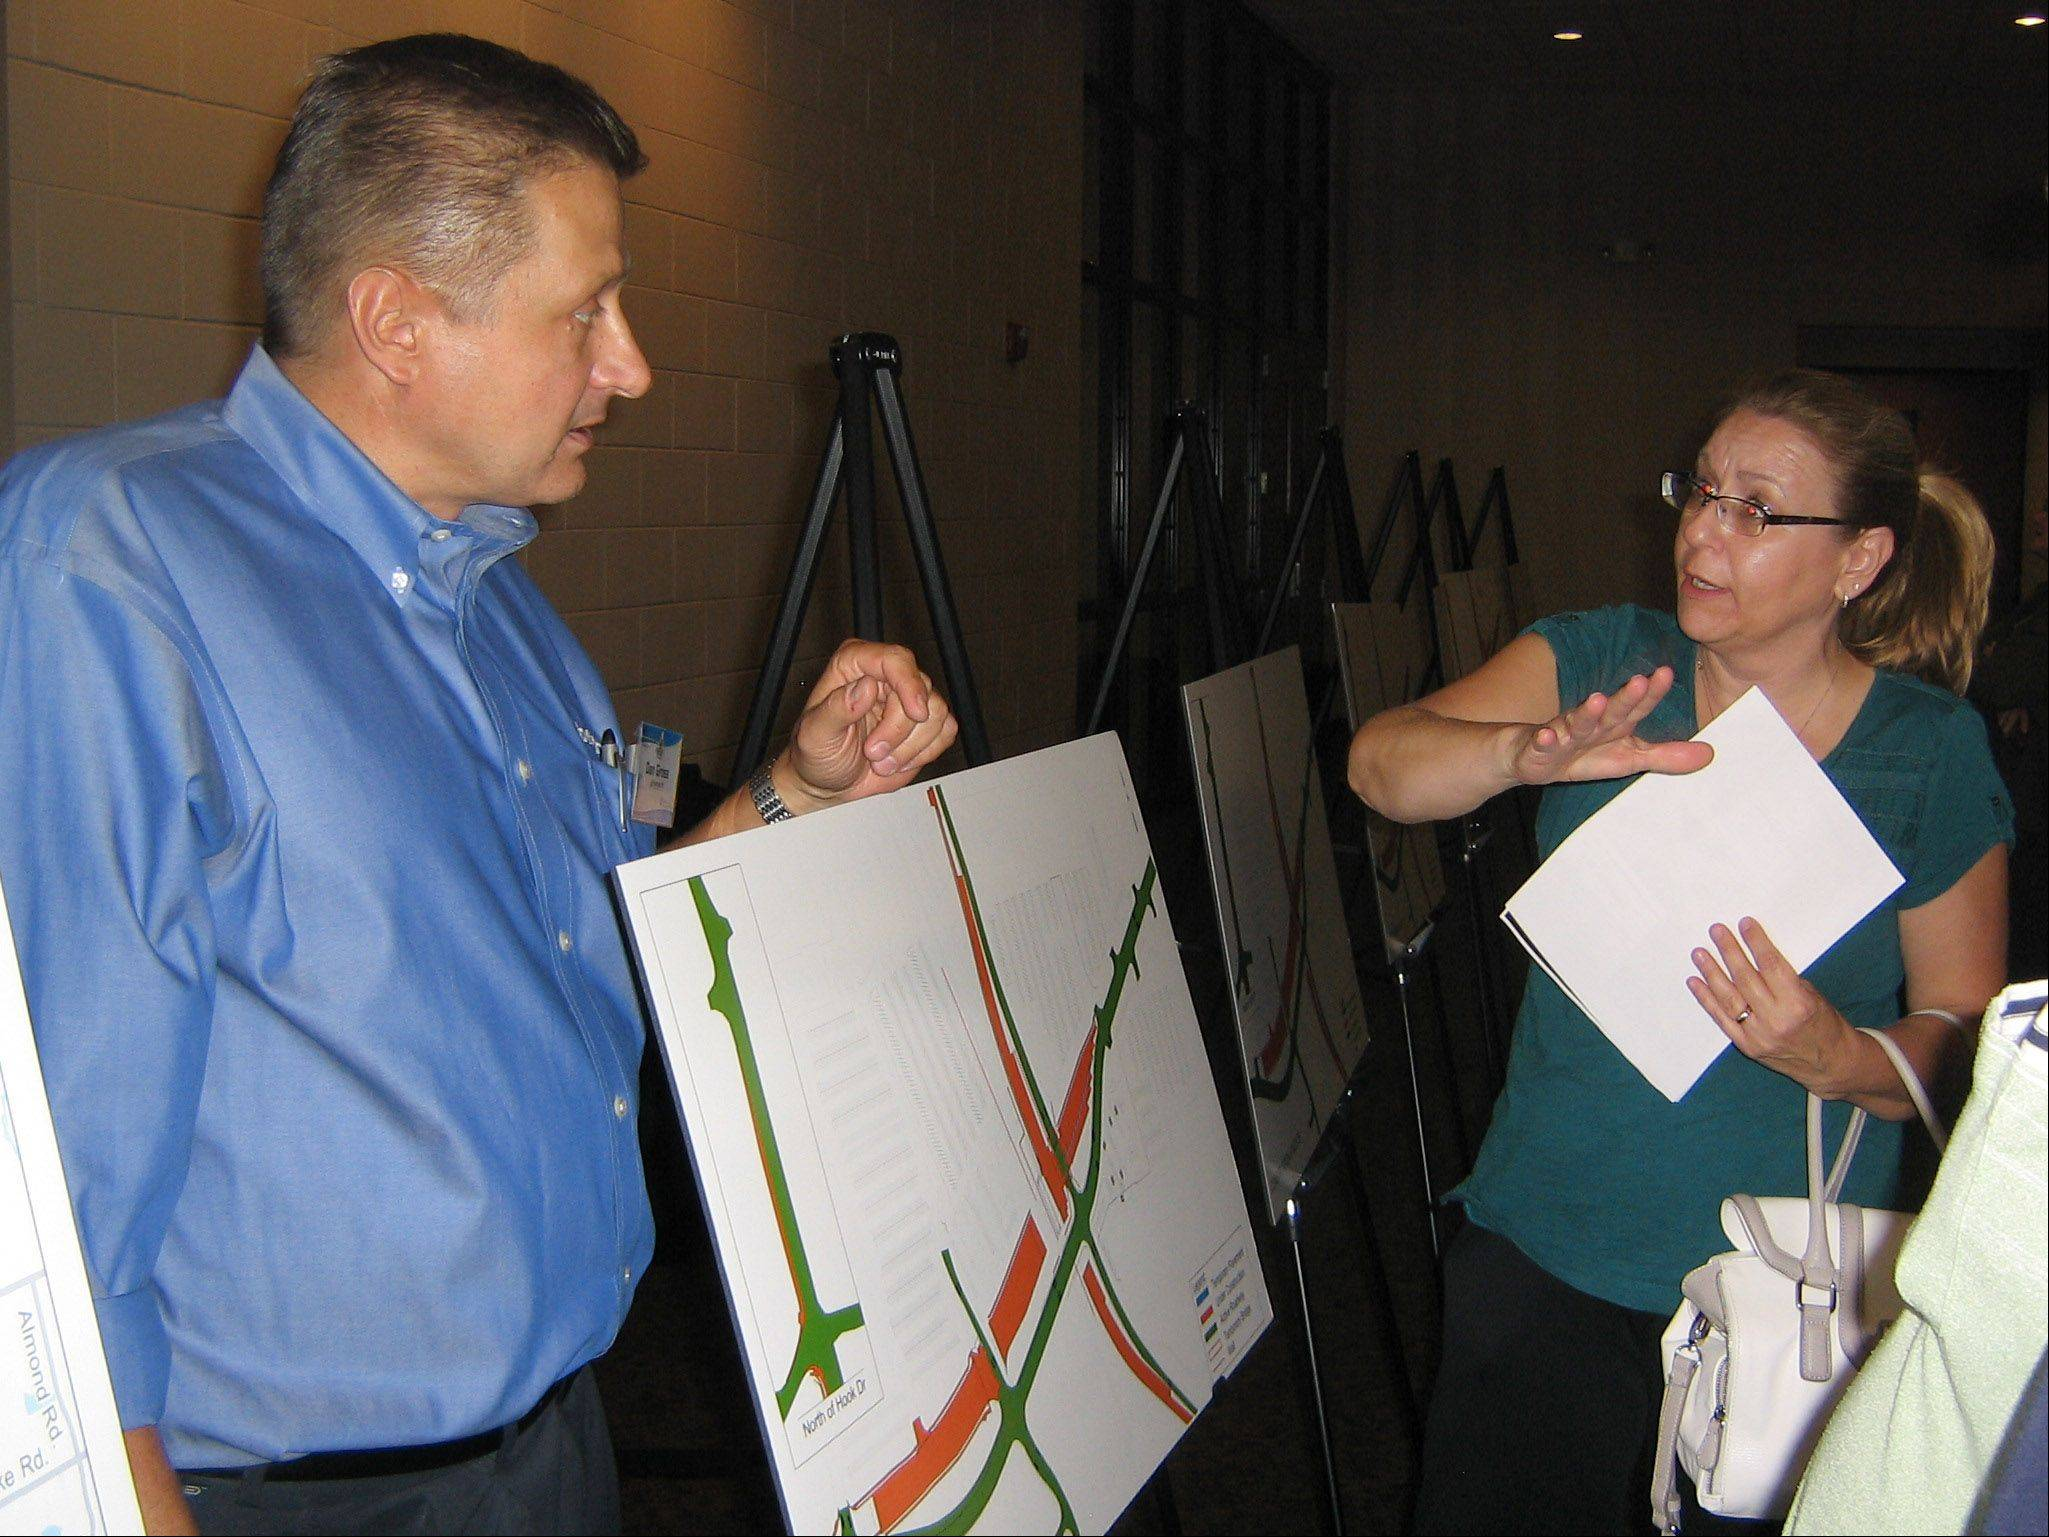 Daniel Gross, left, senior vice president and construction services manager for Alfred Benesch & Co., the firm overseeing the Rollins Gateway project for the Lake County Division of Transportation, explains the plans to Wanda Pucci of Round Lake Beach during an open house.